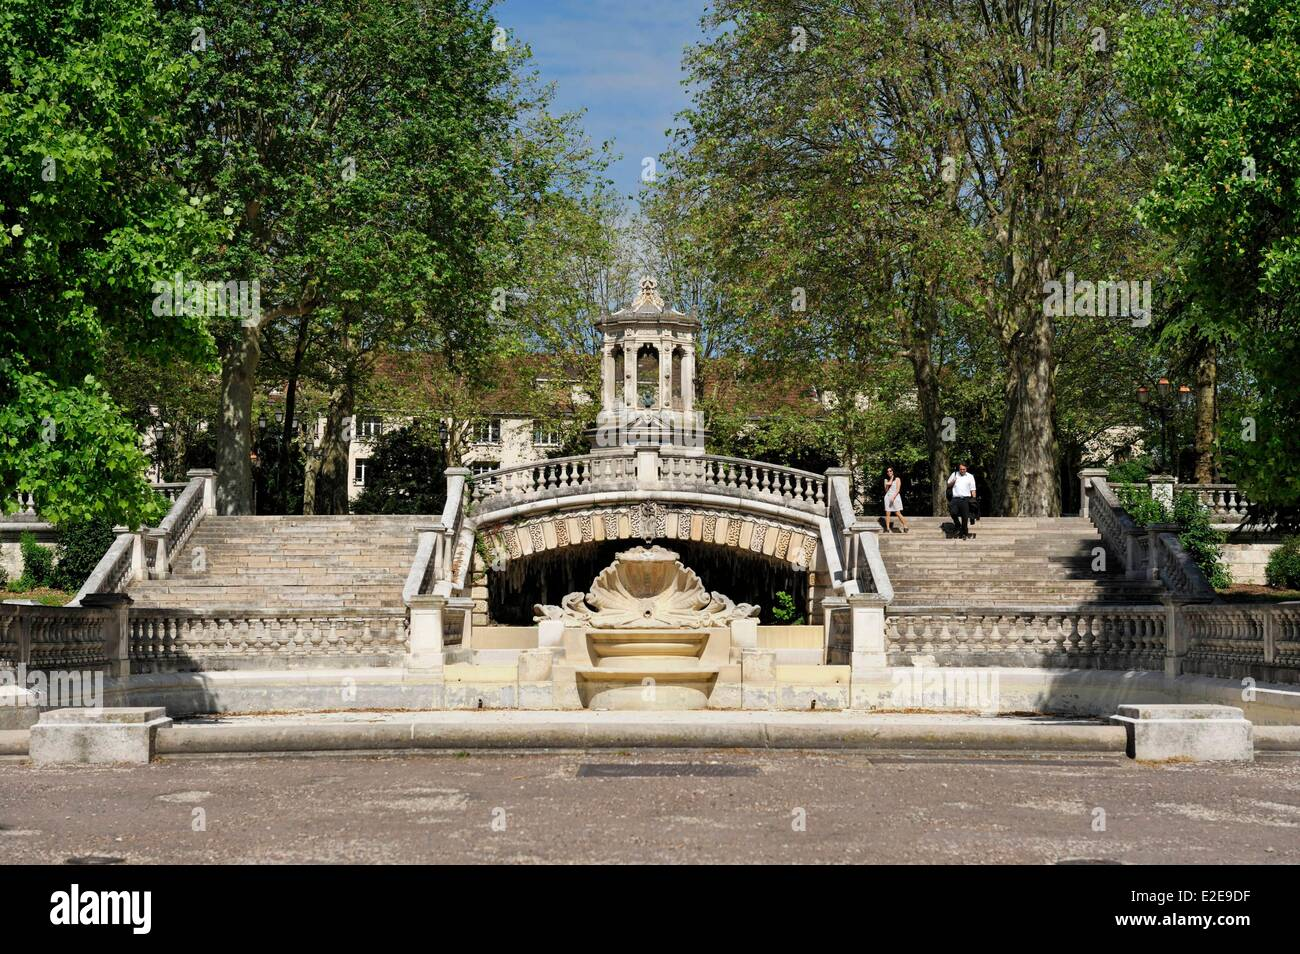 France, Cote d'Or, Dijon, Darcy garden, basin drained of water and fountain in front of the stairs - Stock Image